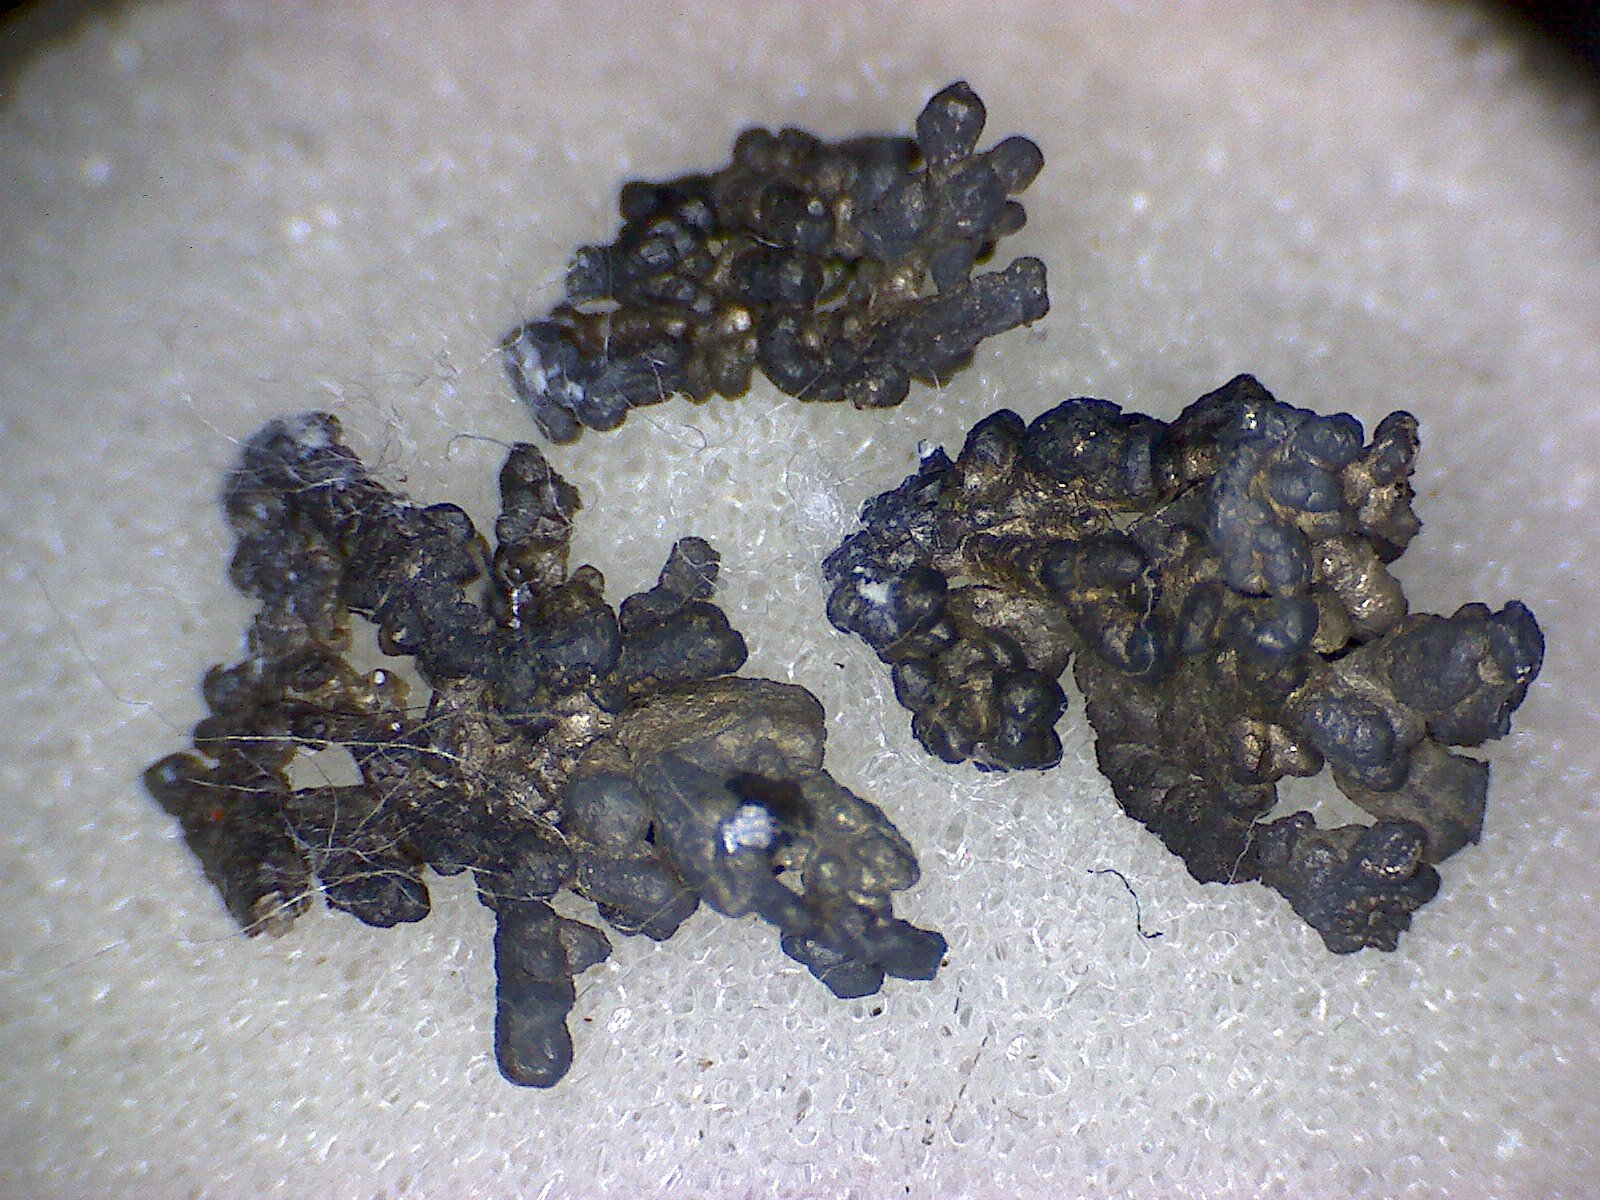 Dyscrasite with silver specimens